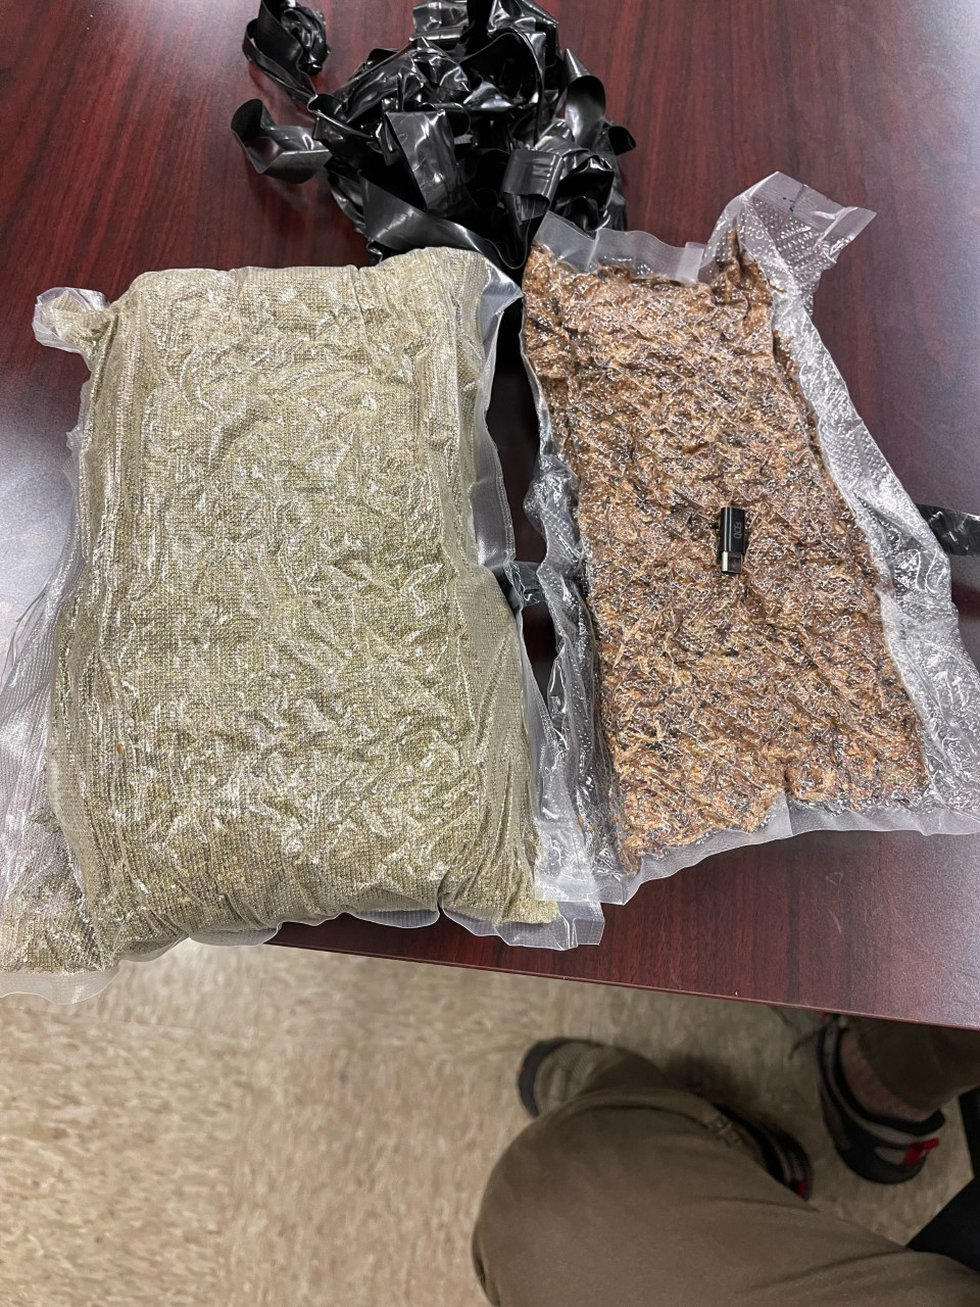 The Brunswick County Sheriff's Office said drugs that were intended for a correctional facility...